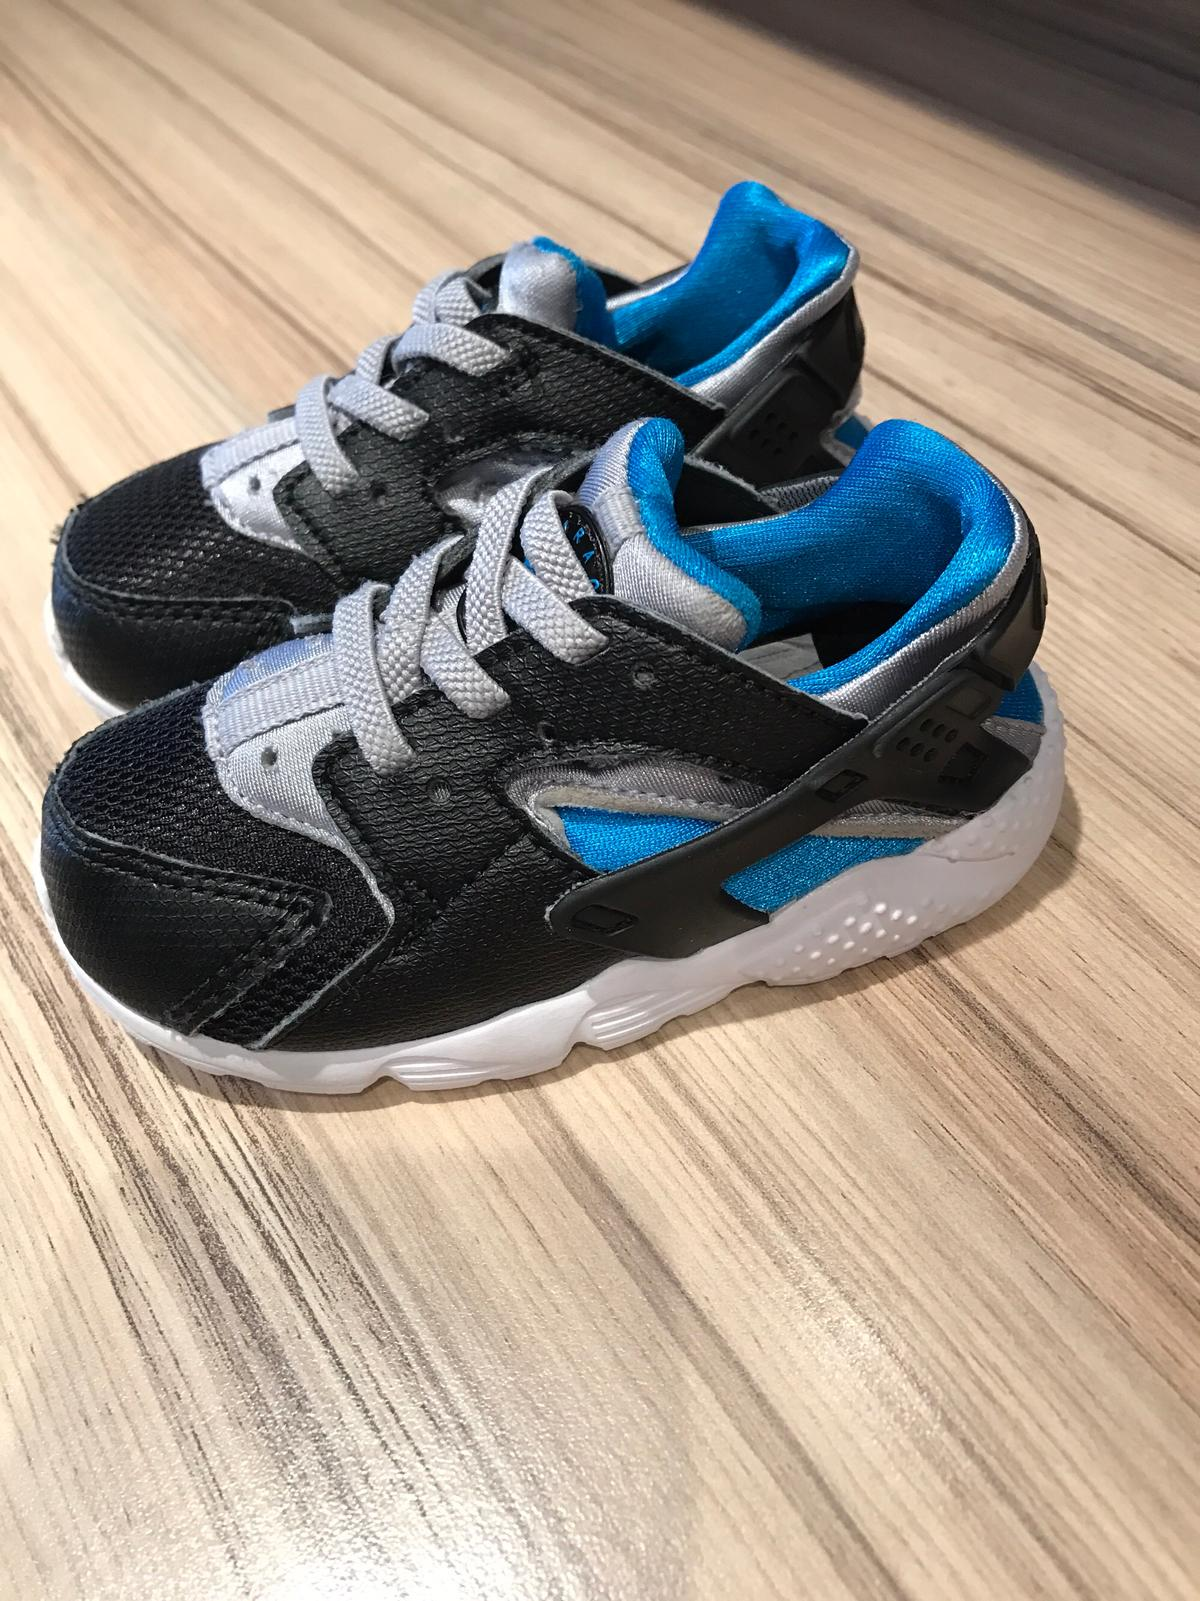 bc06d7b6c93d Baby boy Huaraches ( size 6.5 ) in N5 London for £5.00 for sale - Shpock